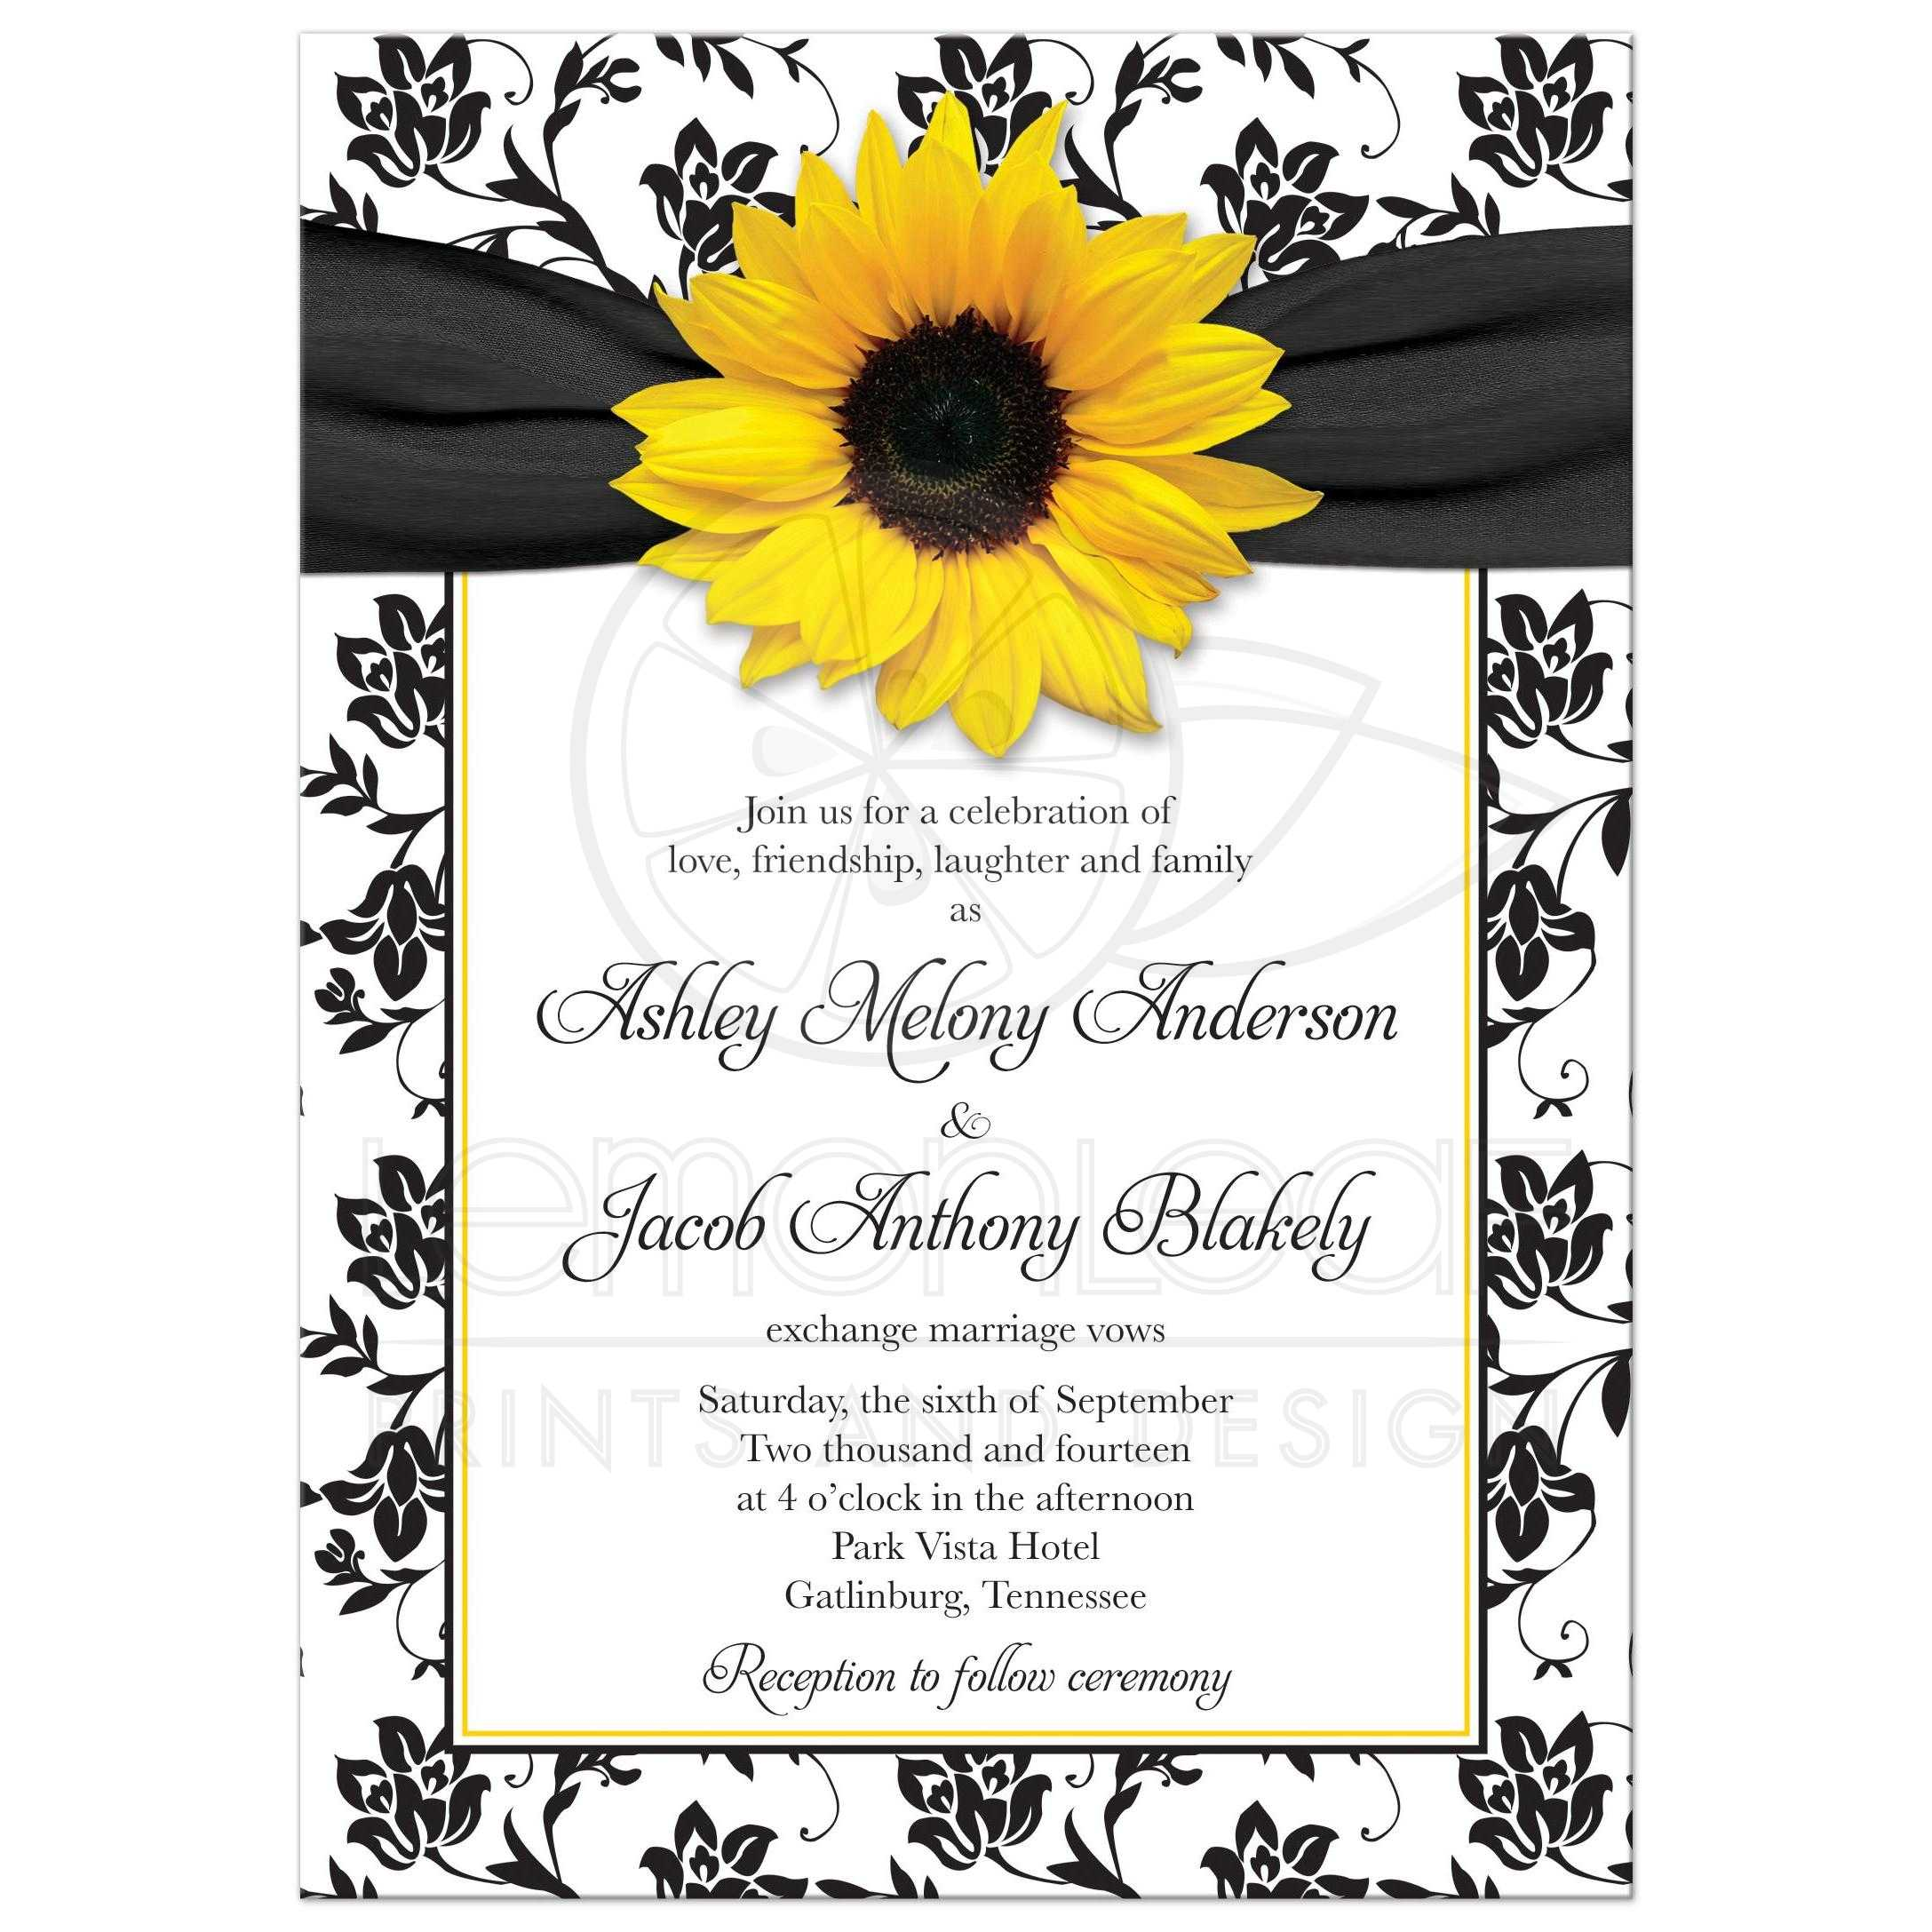 wedding invitation sunflower damask black white yellow